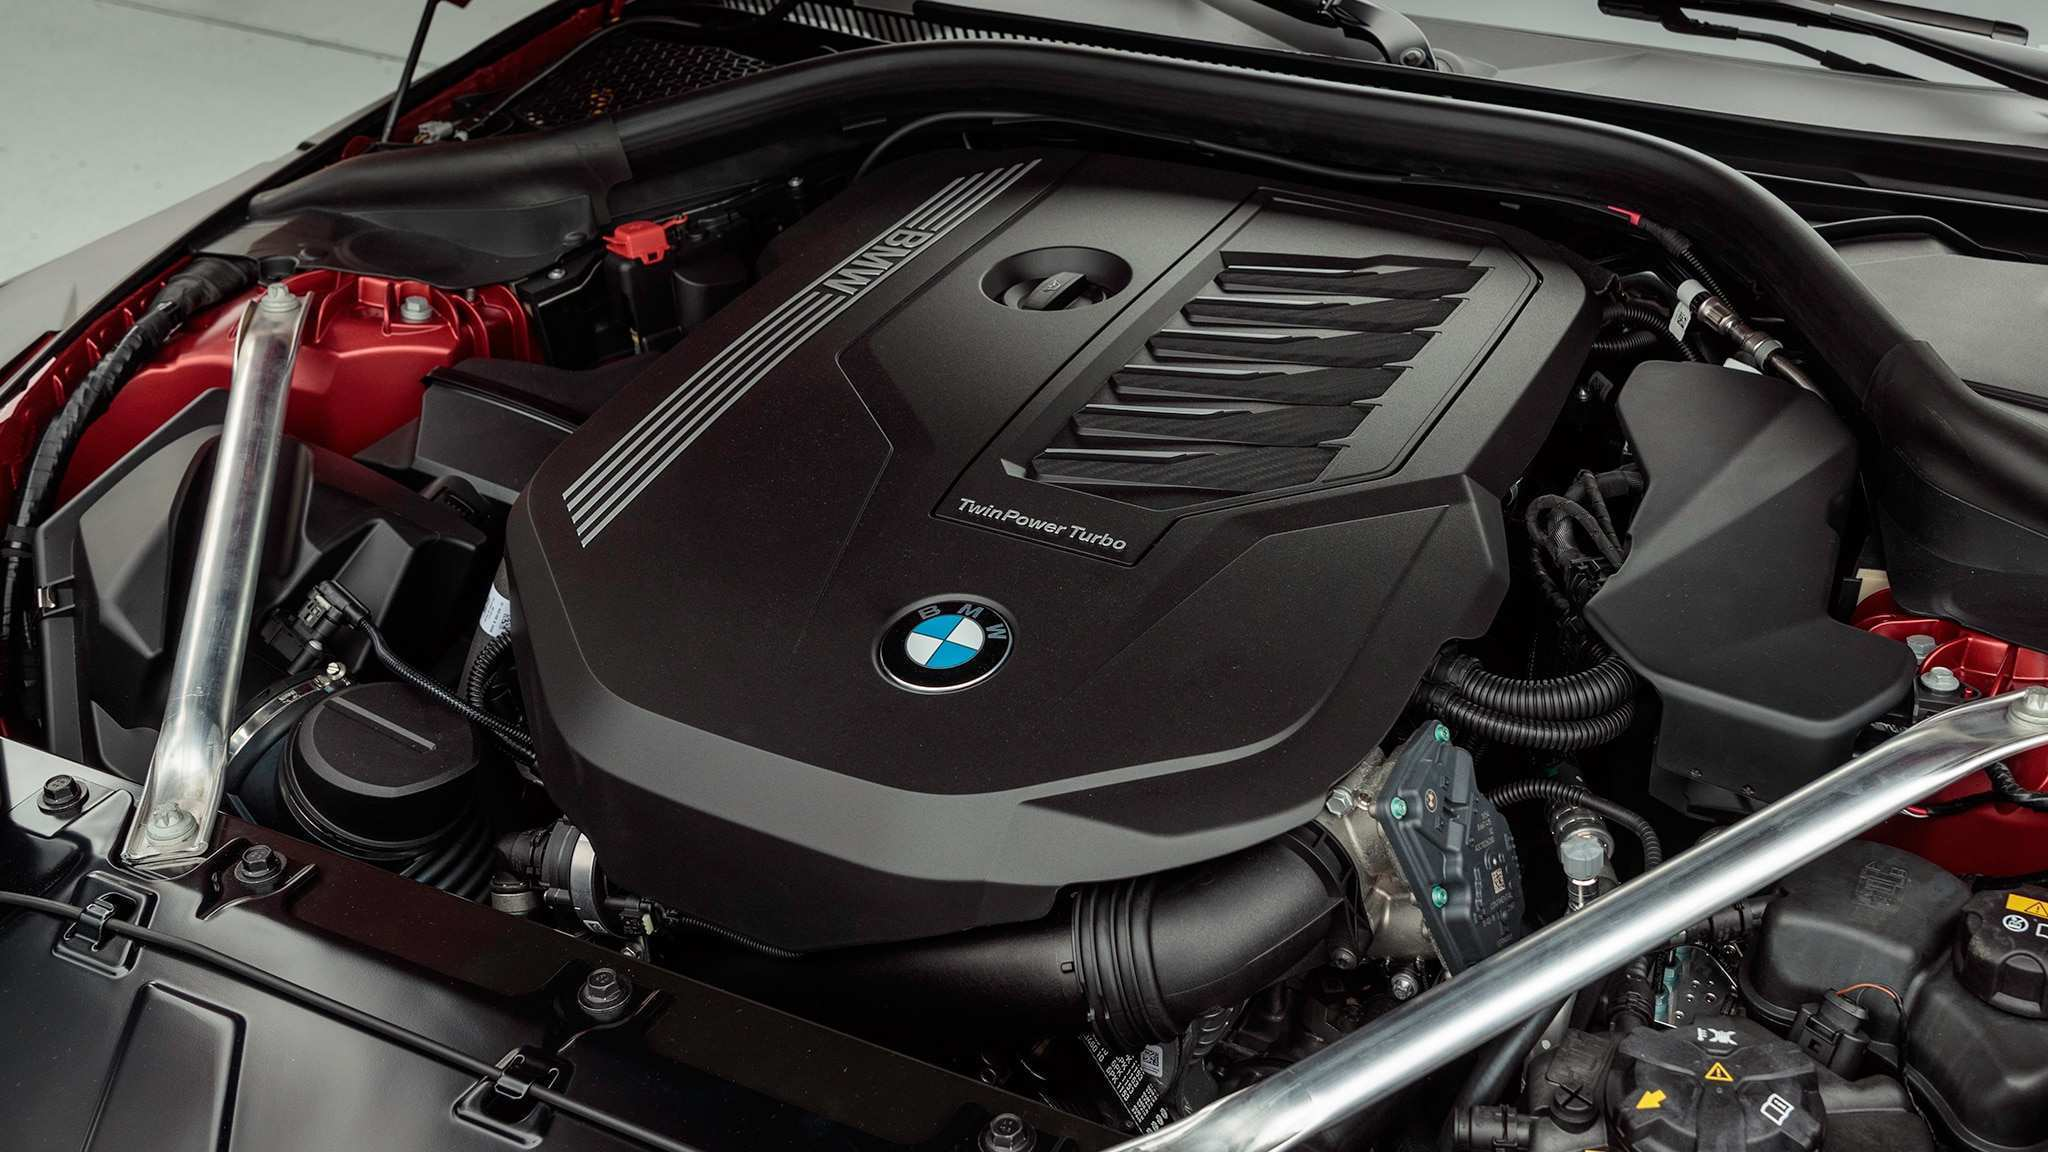 41 Best Review 2019 Bmw Z4 Engine Redesign and Concept for 2019 Bmw Z4 Engine